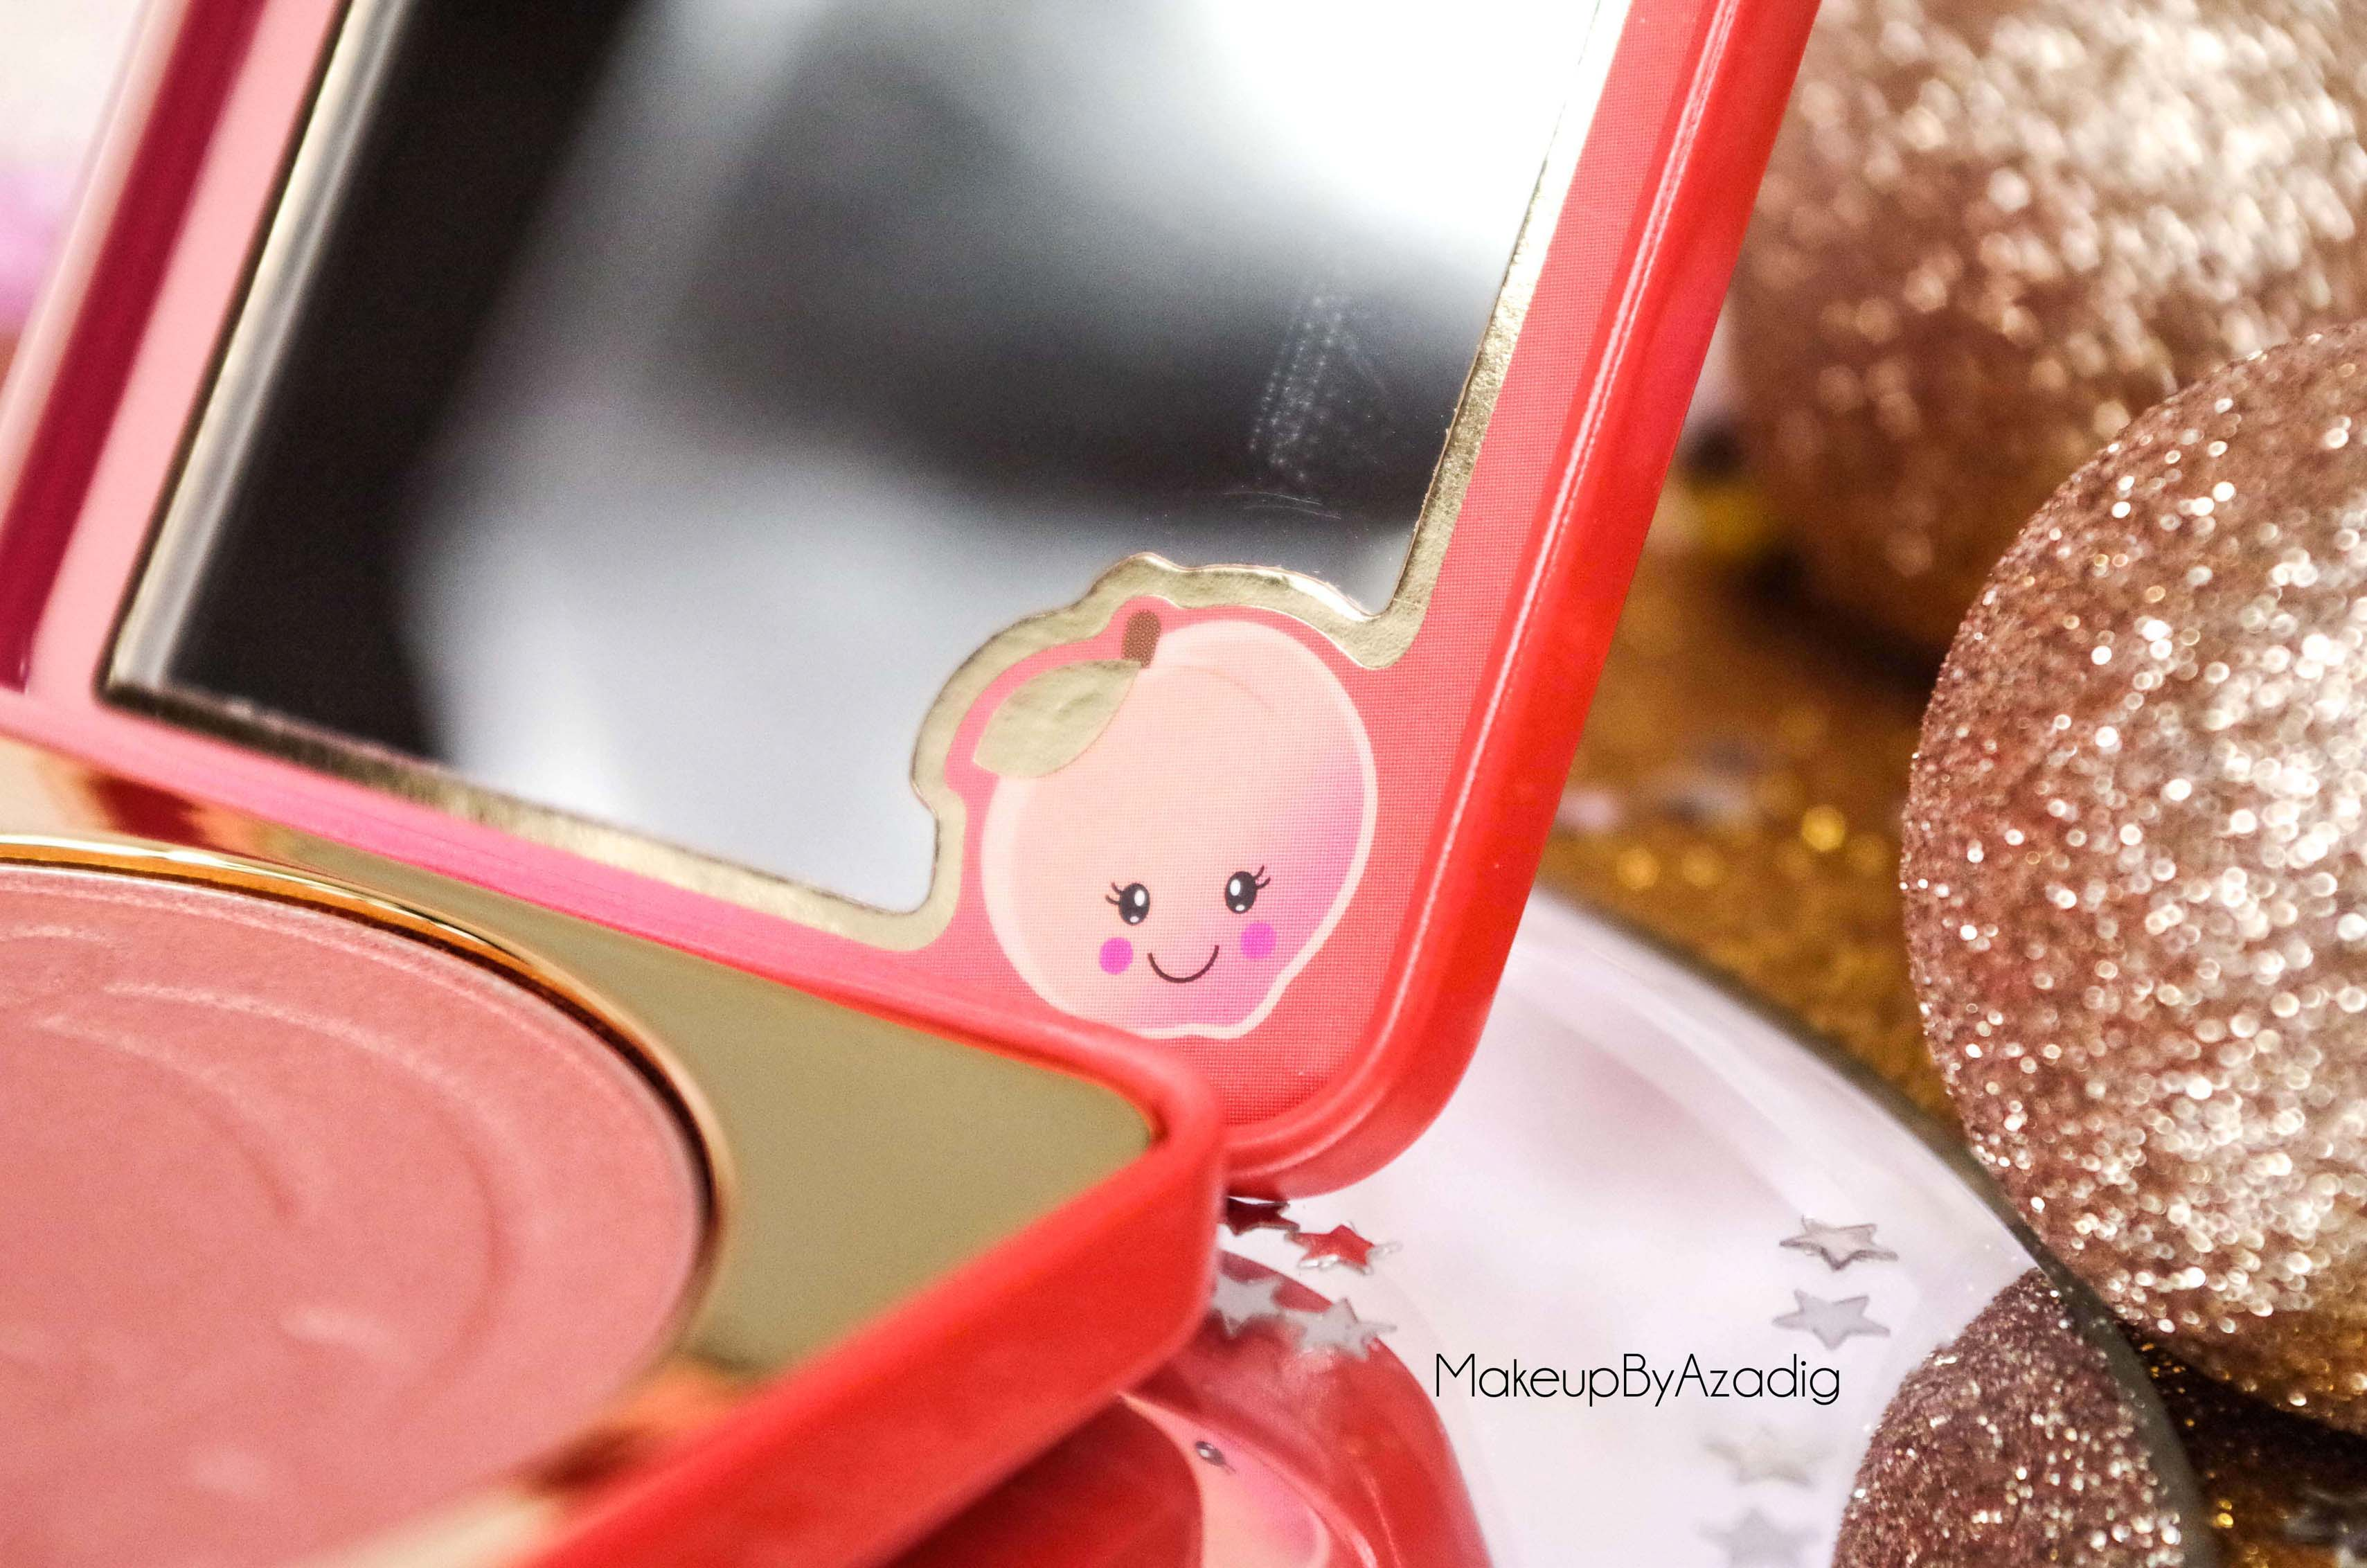 review-nouveau-blush-papa-dont-peach-too-faced-sephora-ete-printemps-paris-sweet-peach-swatch-avis-makeupbyazadig-peche-2